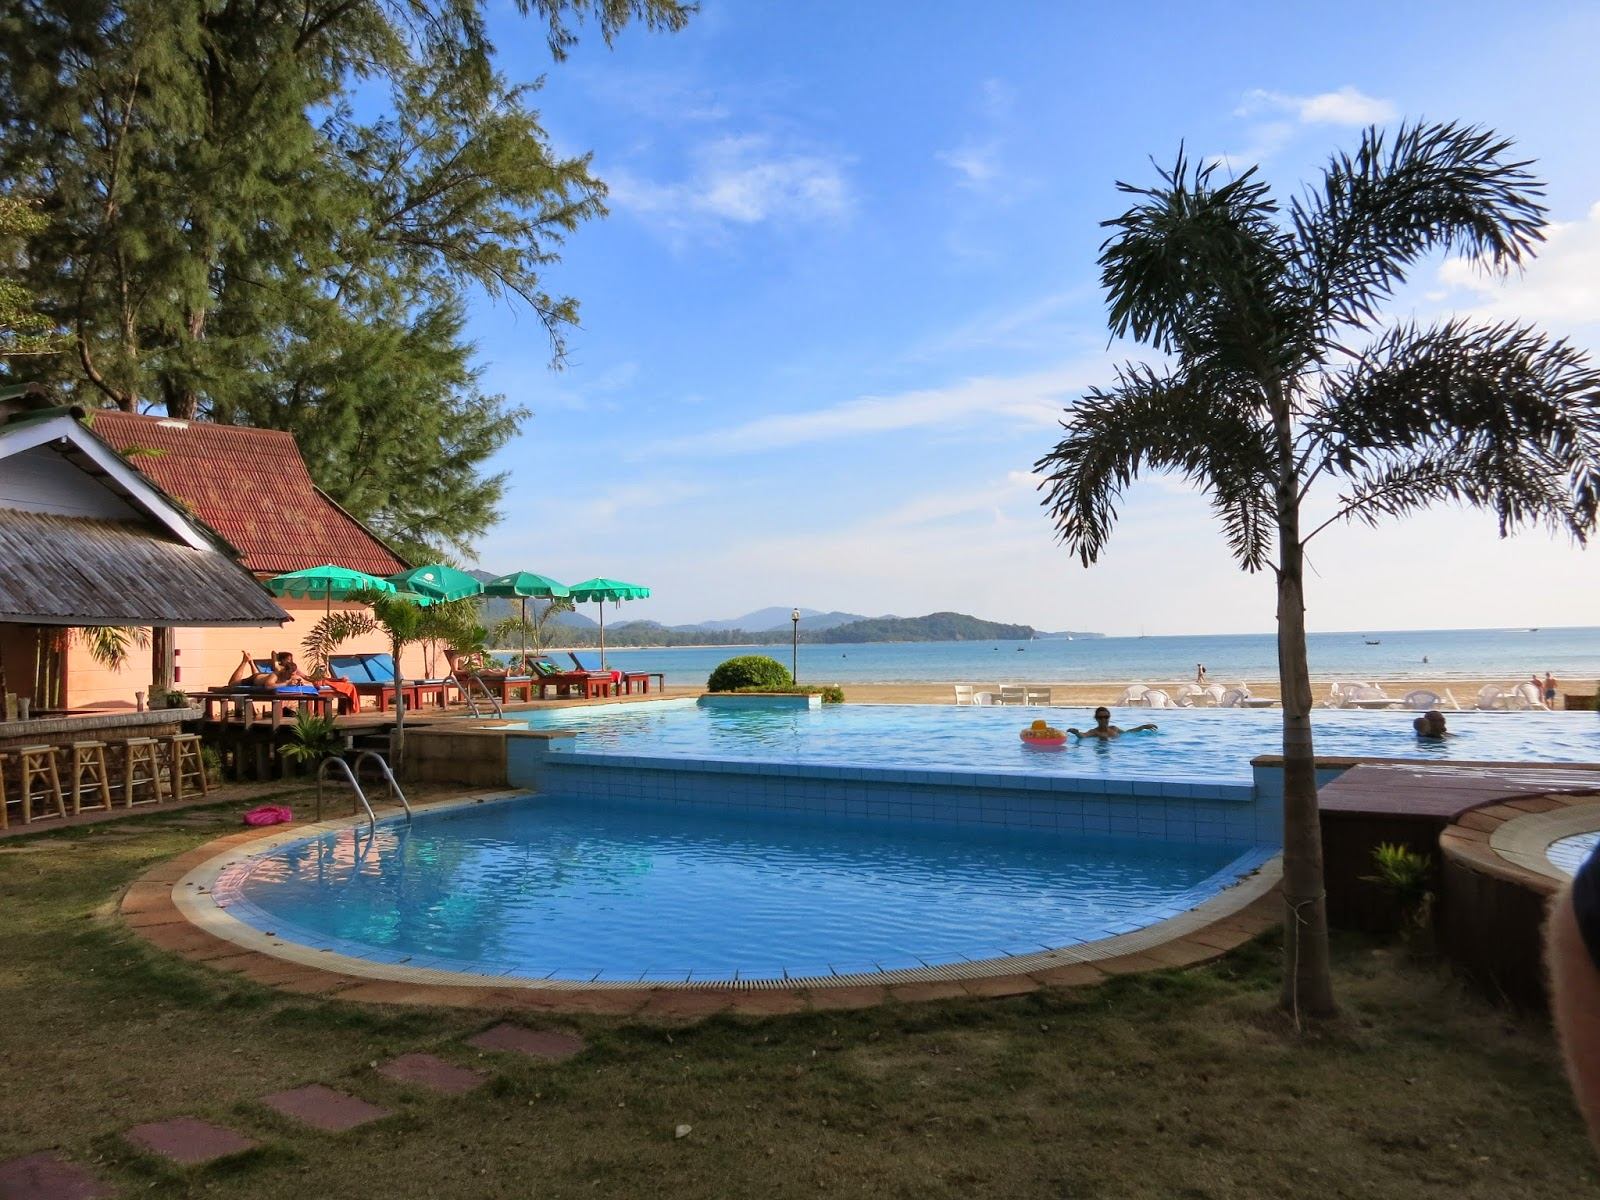 Twin Bay Resort, Kow Kwang beach, Koh Lanta, pool